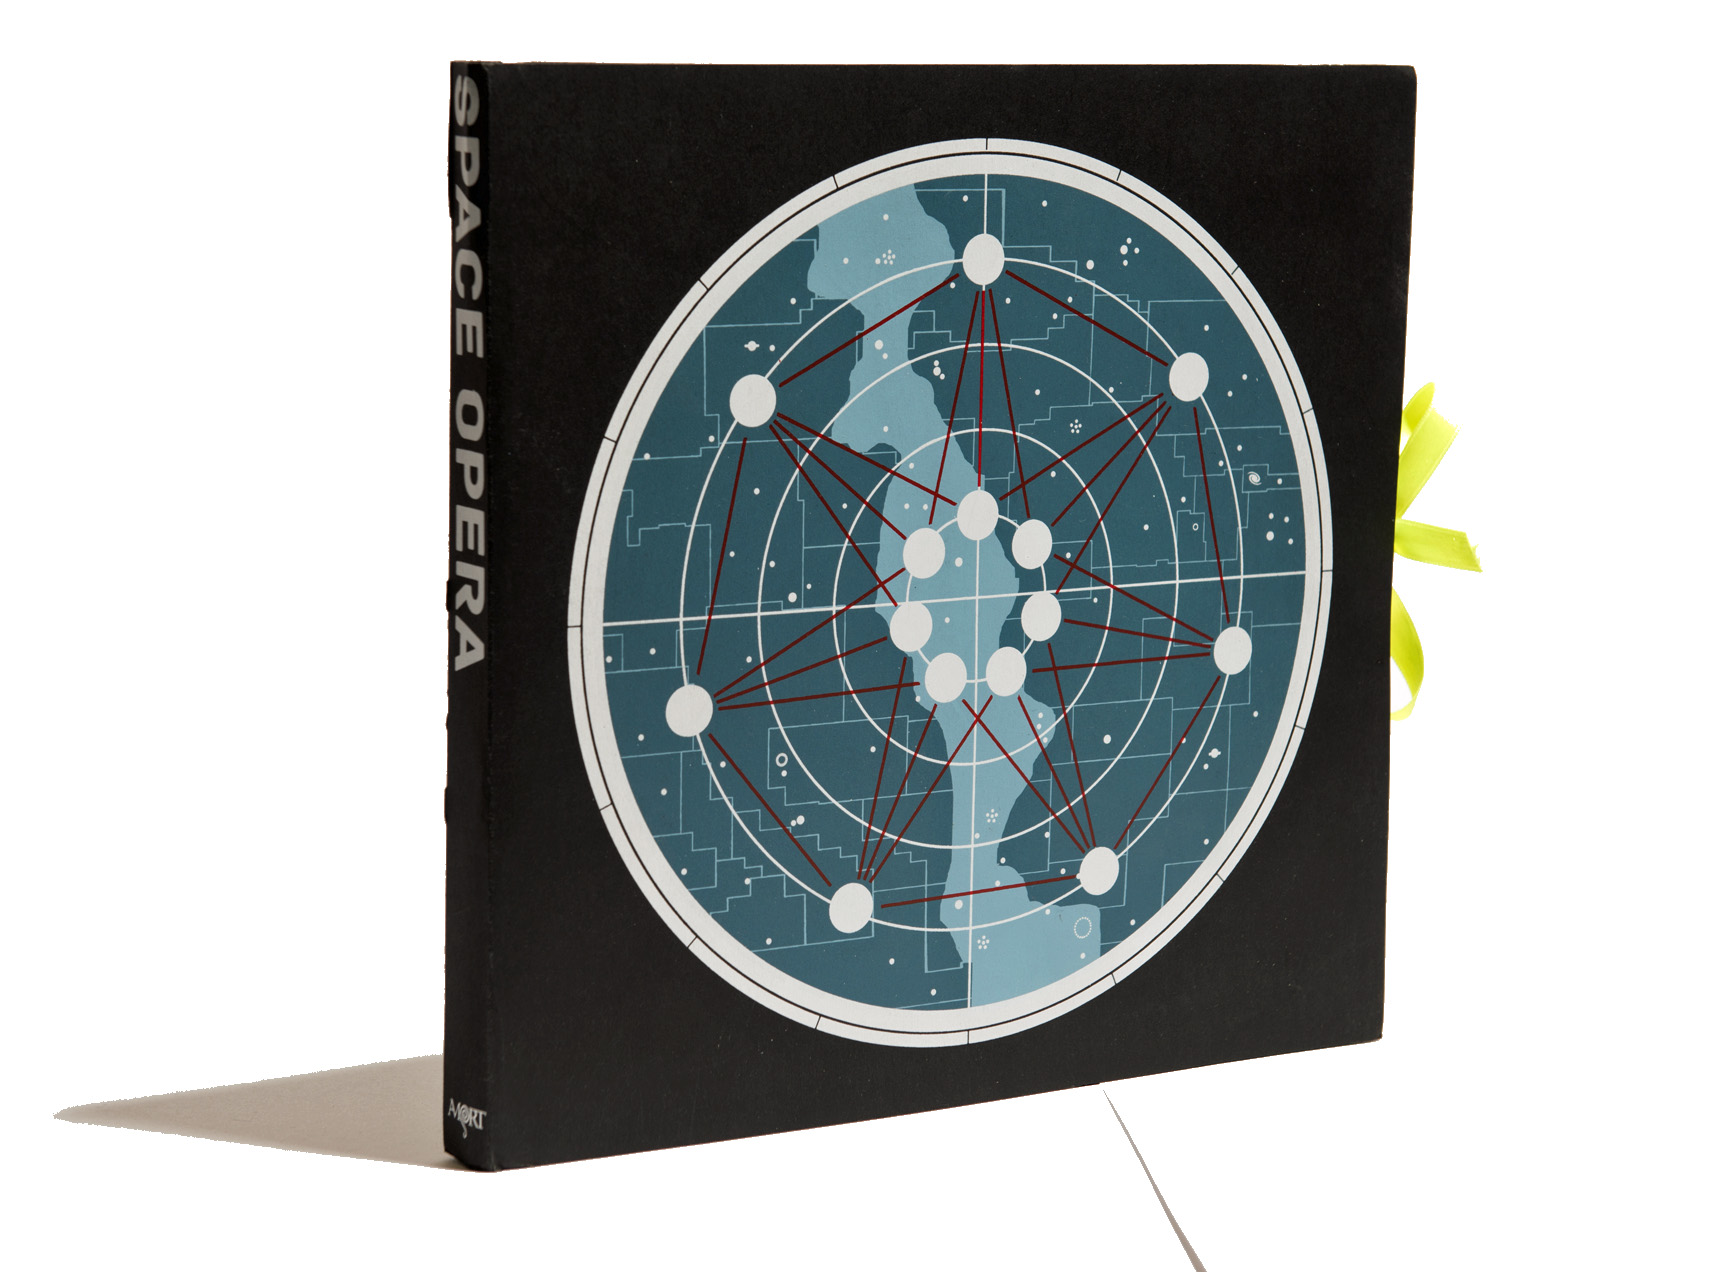 carte du ciel, skymap, constellation, cosmos, pop up book, livre animé, popupbook, pop-up, space opera, editions a mort, livre d